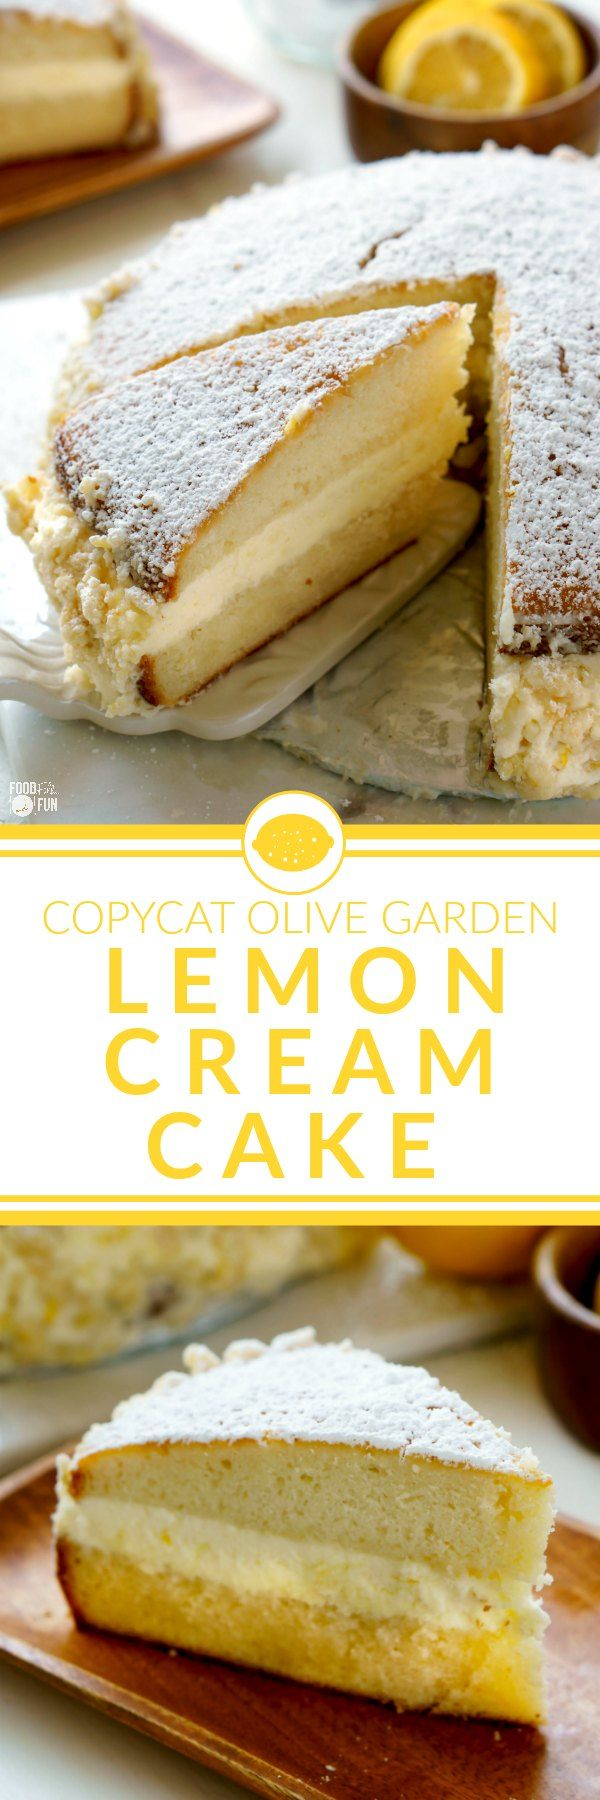 Authentic Olive Garden Lemon Cream Cake Recipes